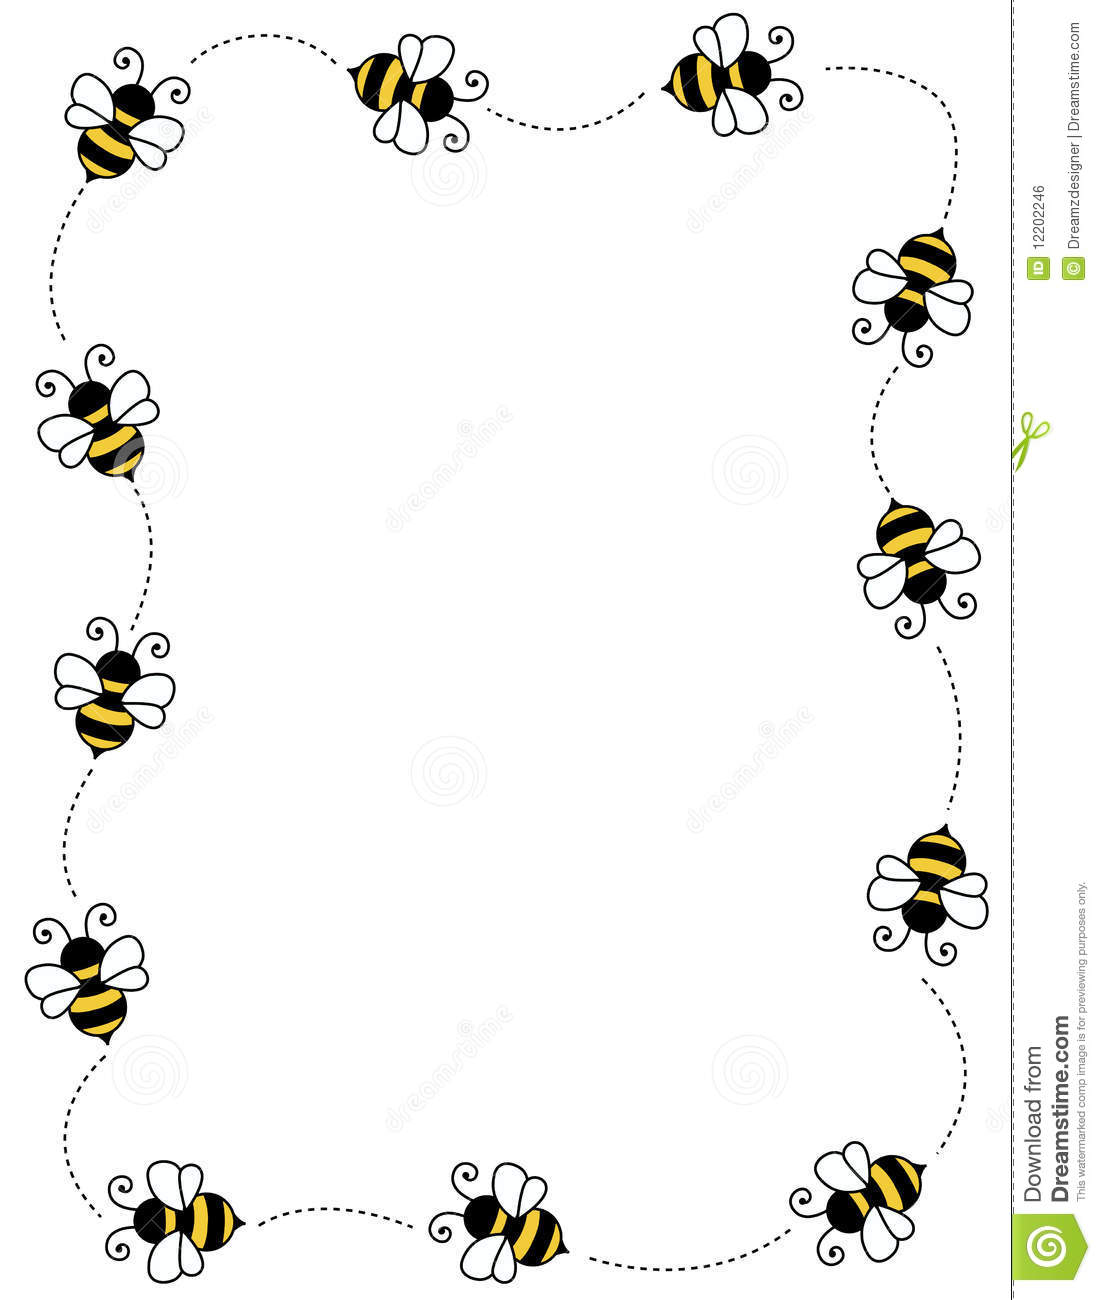 Background clipart bee With bumble background  on